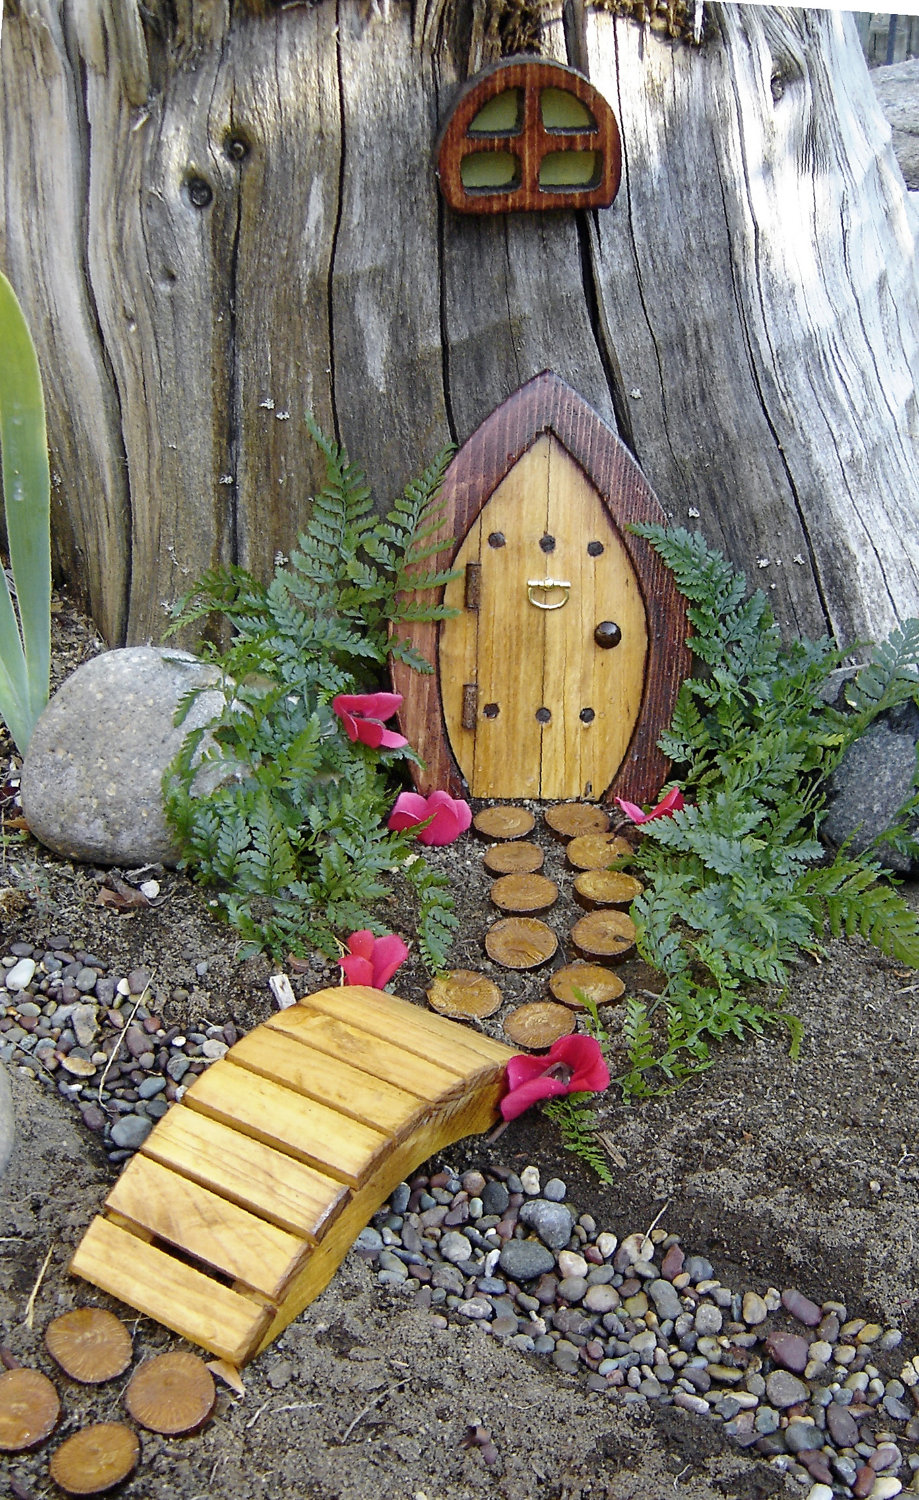 Le Meilleur Fab Fairy Doors In All Kinds Of Places Homejelly Ce Mois Ci